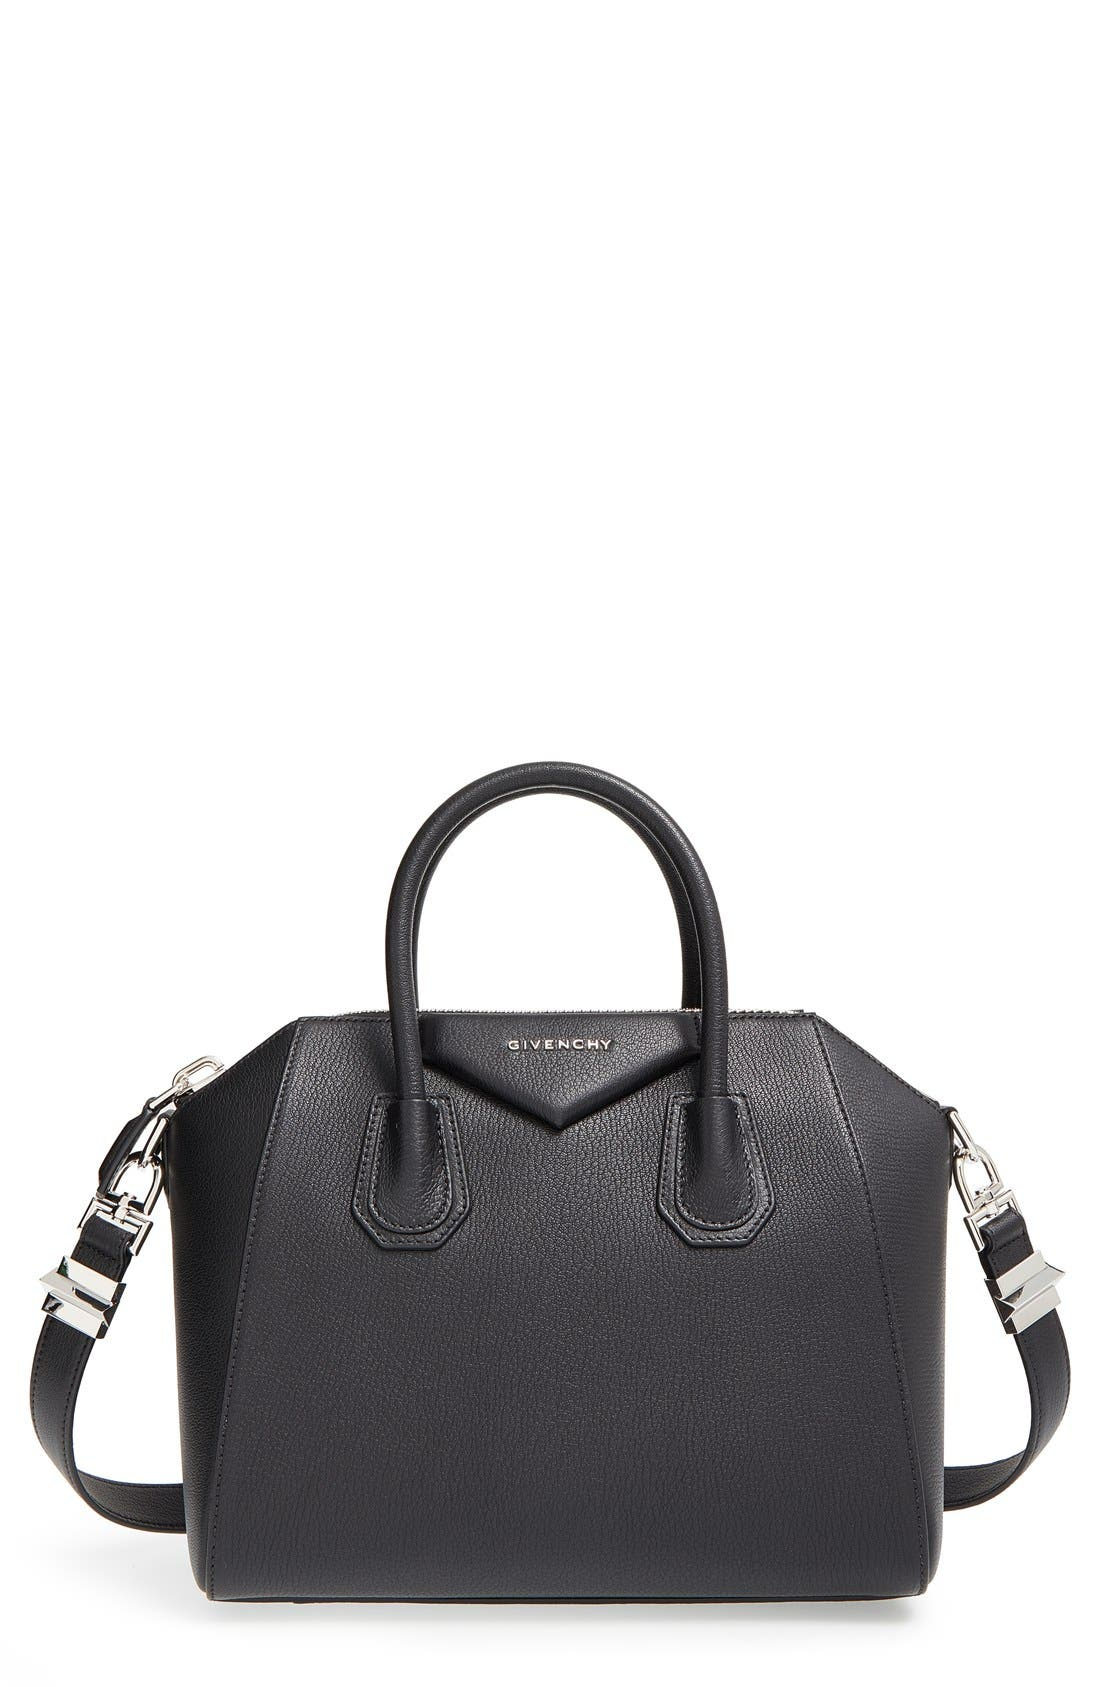 Givenchy 'Small Antigona' Sugar Leather Satchel